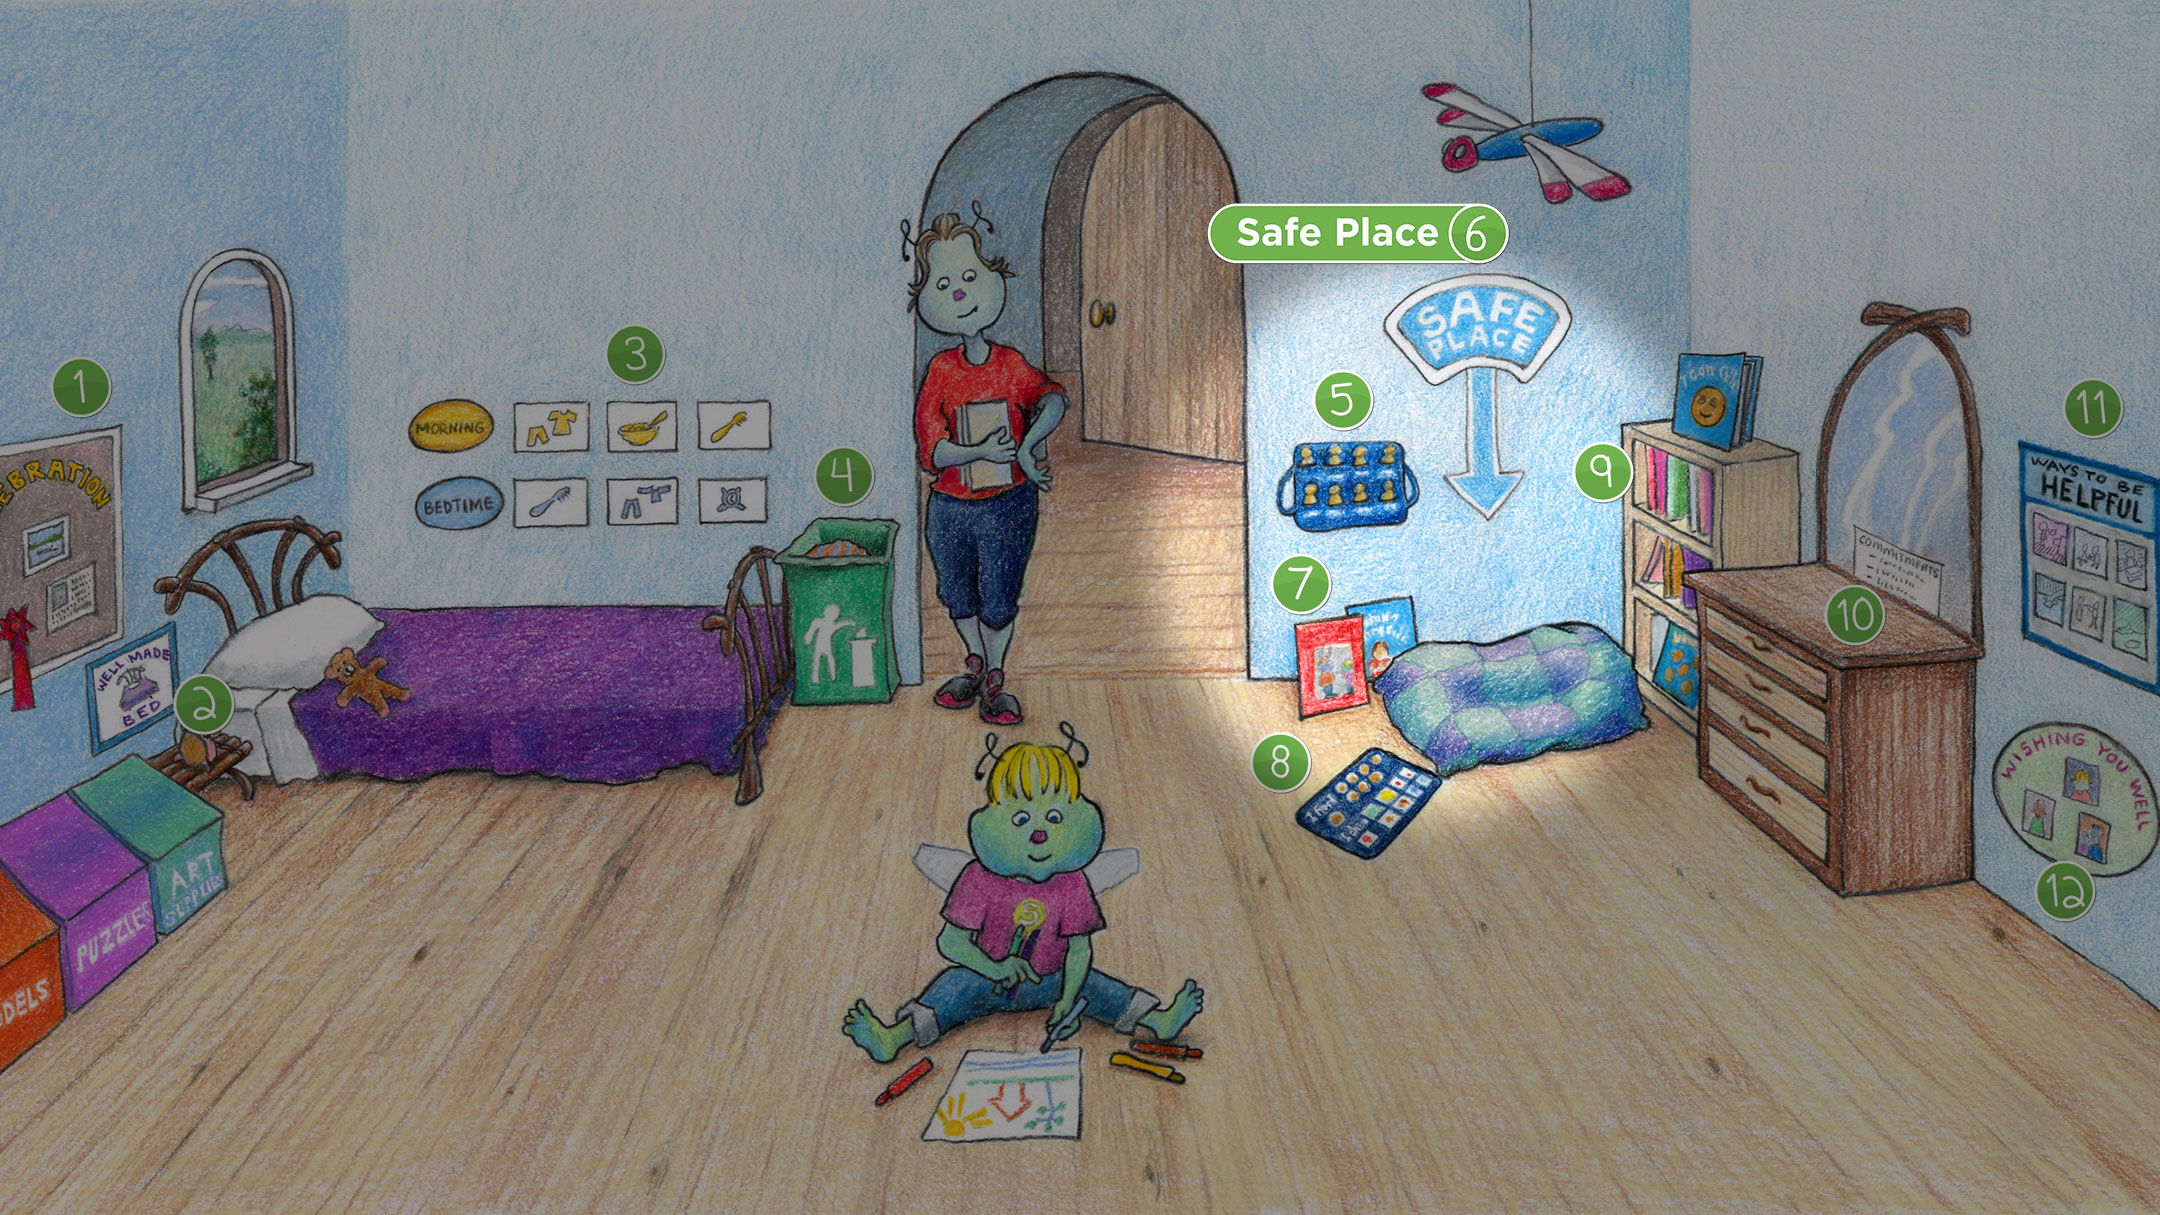 Elementary Age Room: Safe Place